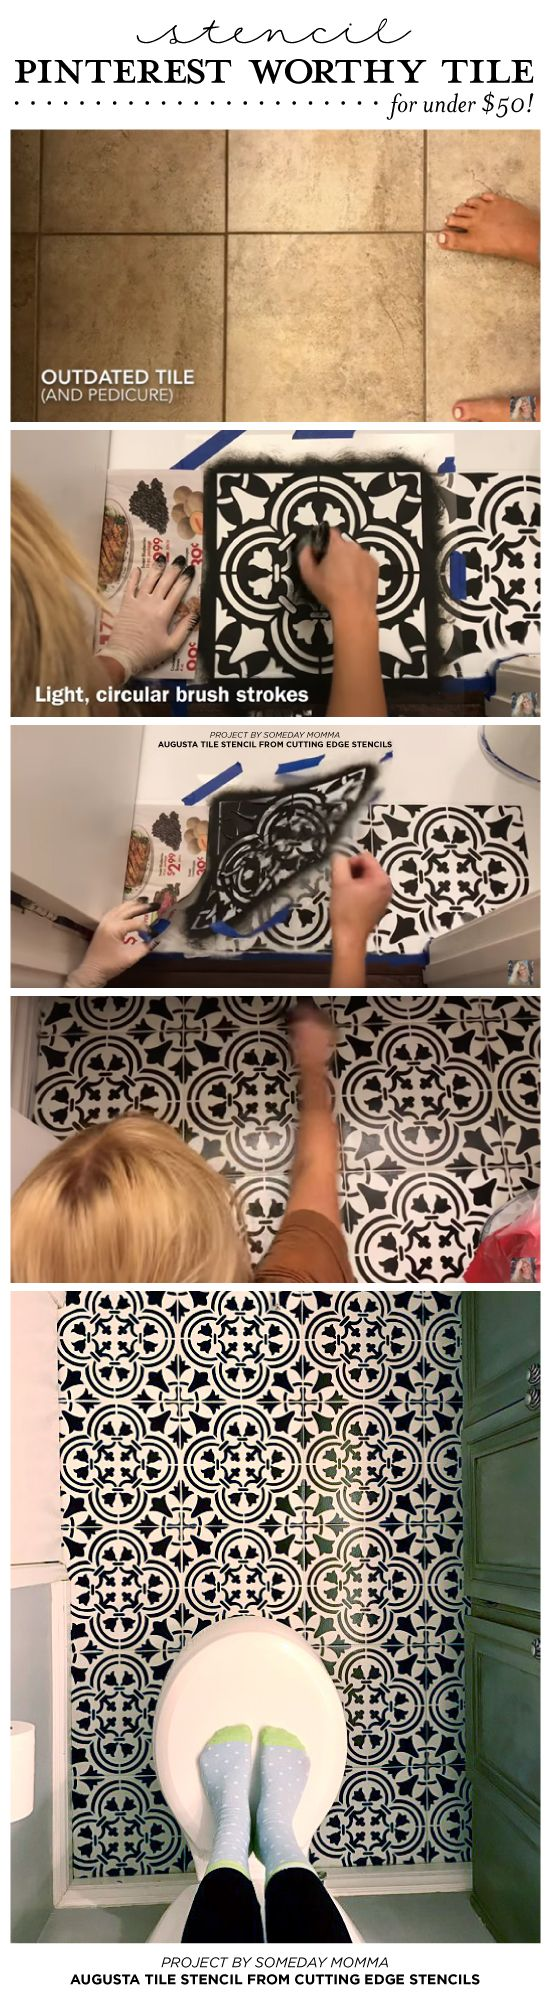 How to Paint and Stencil a Tile Floor - video tutorial shows you how - Someday Mama, via Cutting Edge Stencils